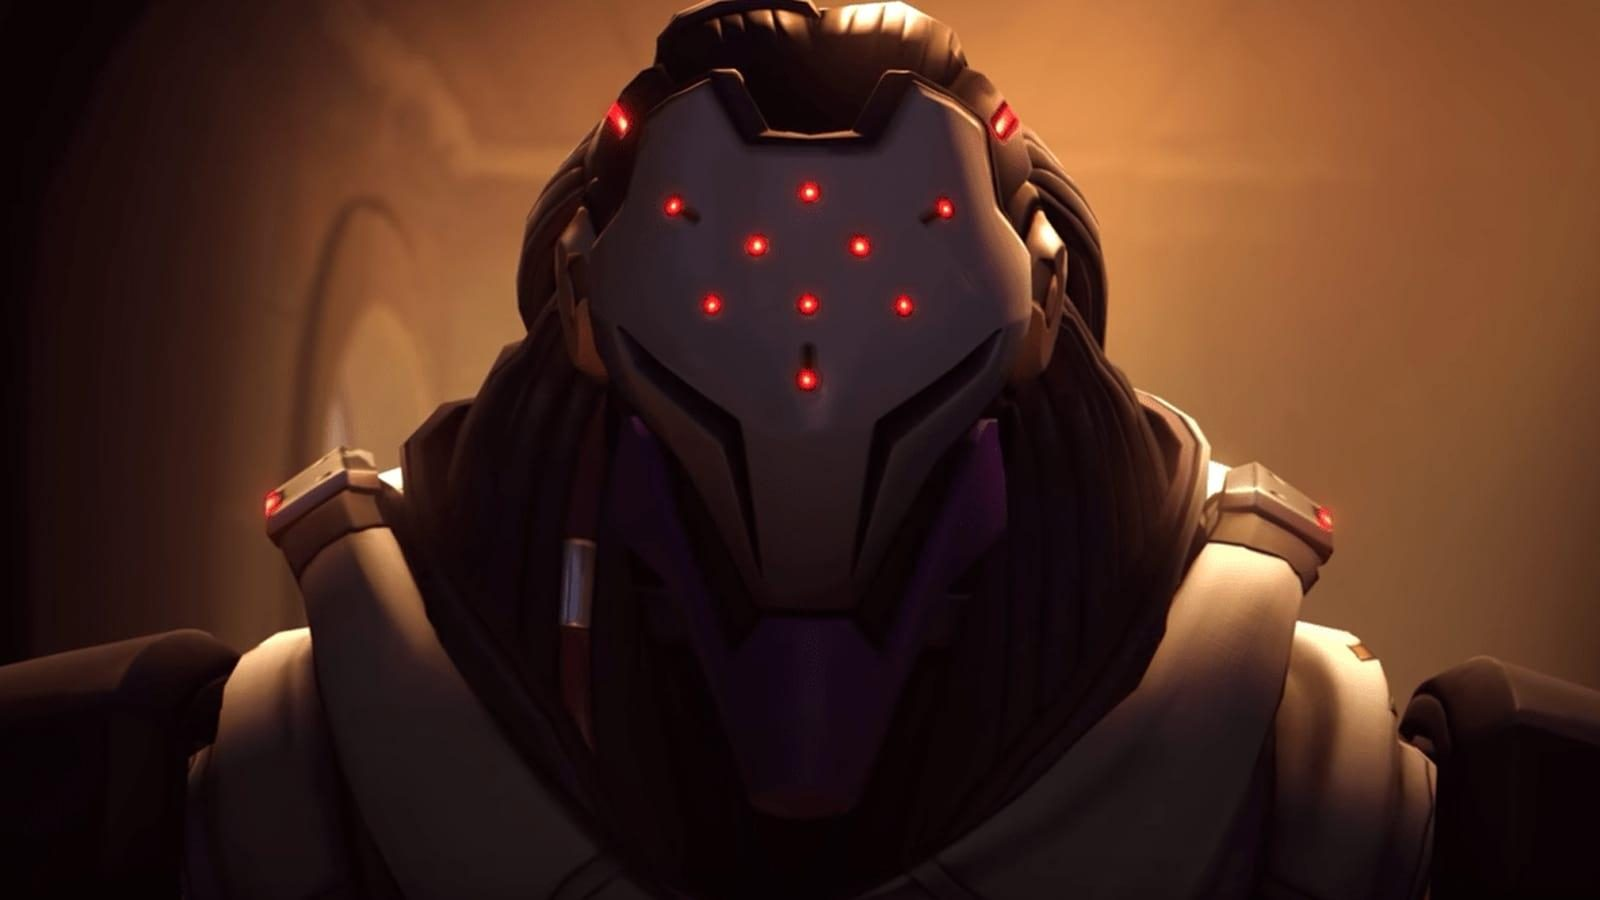 The Omnic at the end of Overwatch Storm Rising